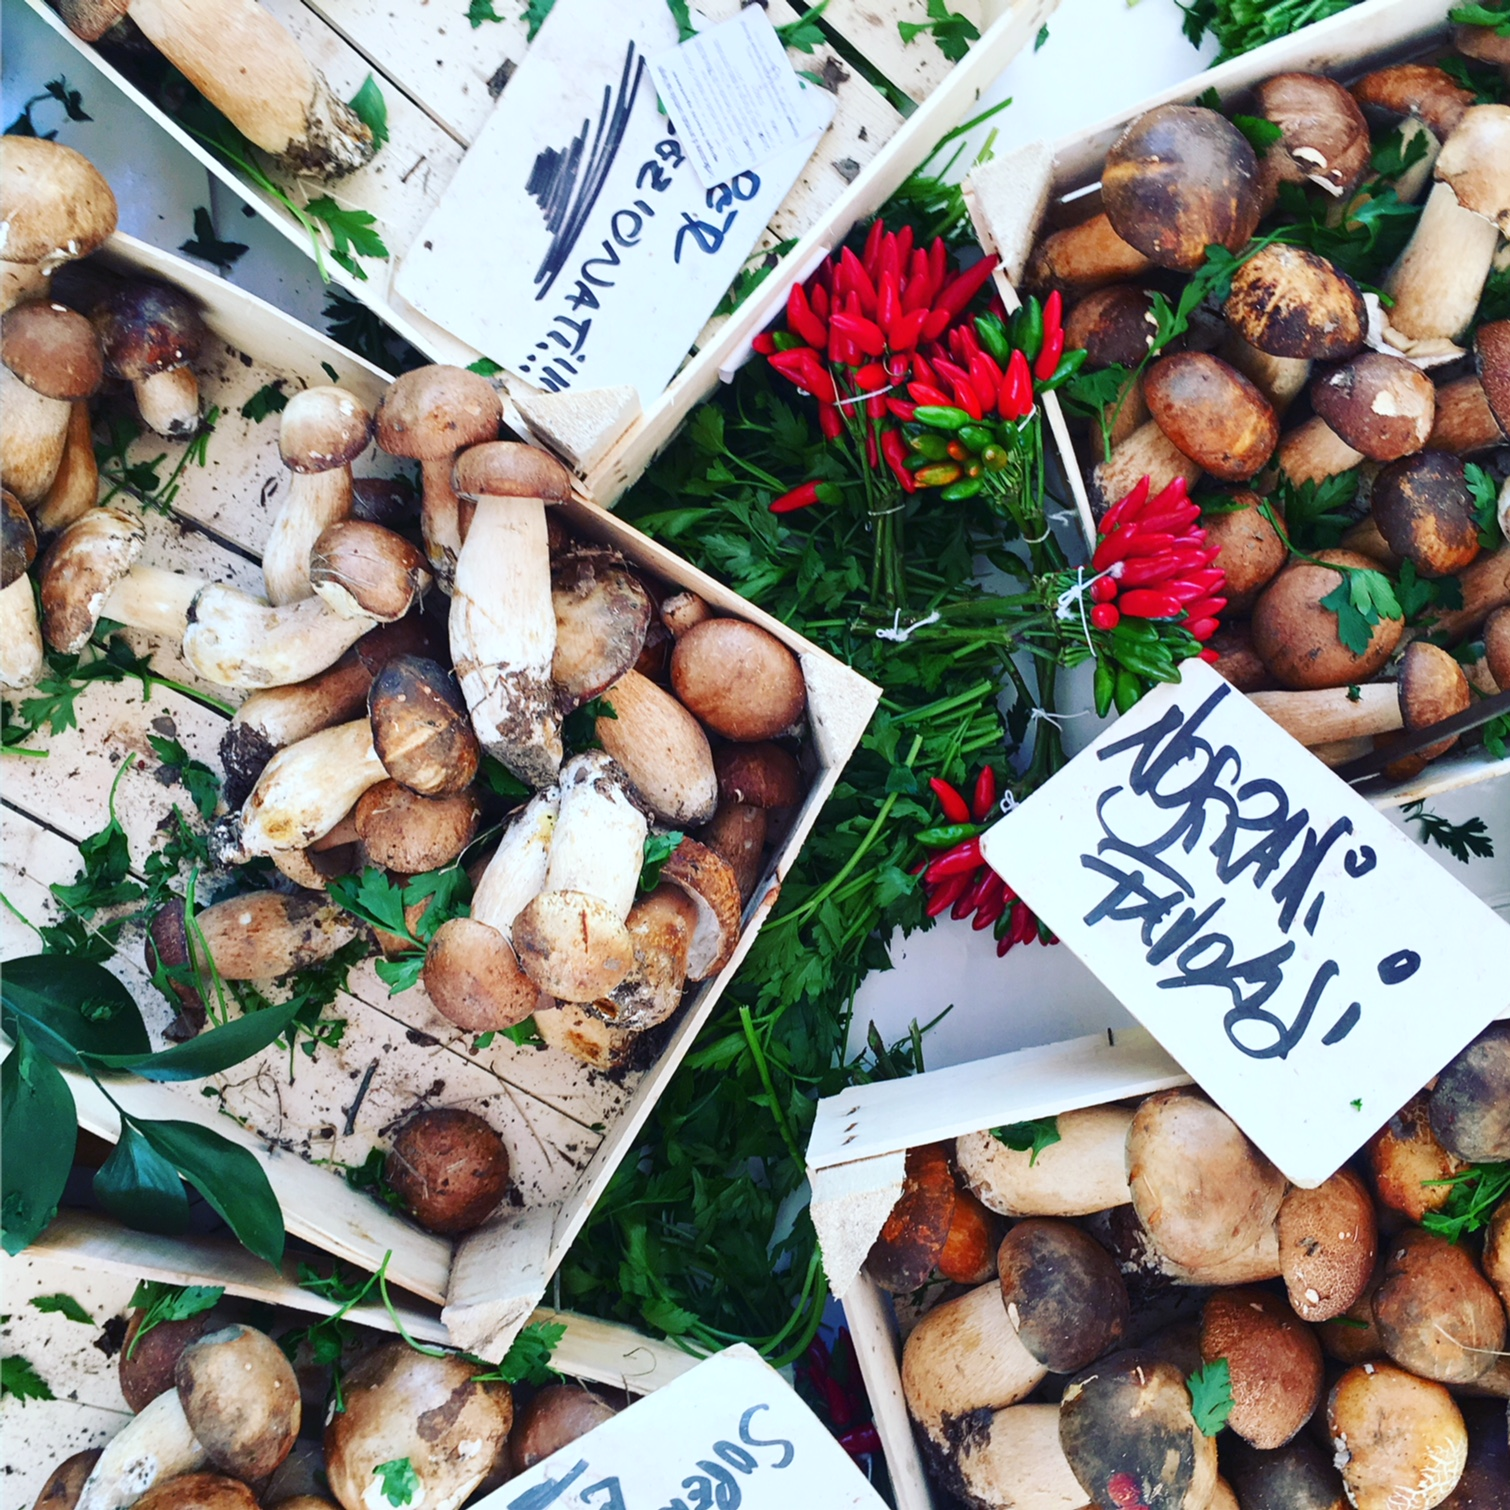 Porcini Mushrooms at Market in Italy with signs.JPG